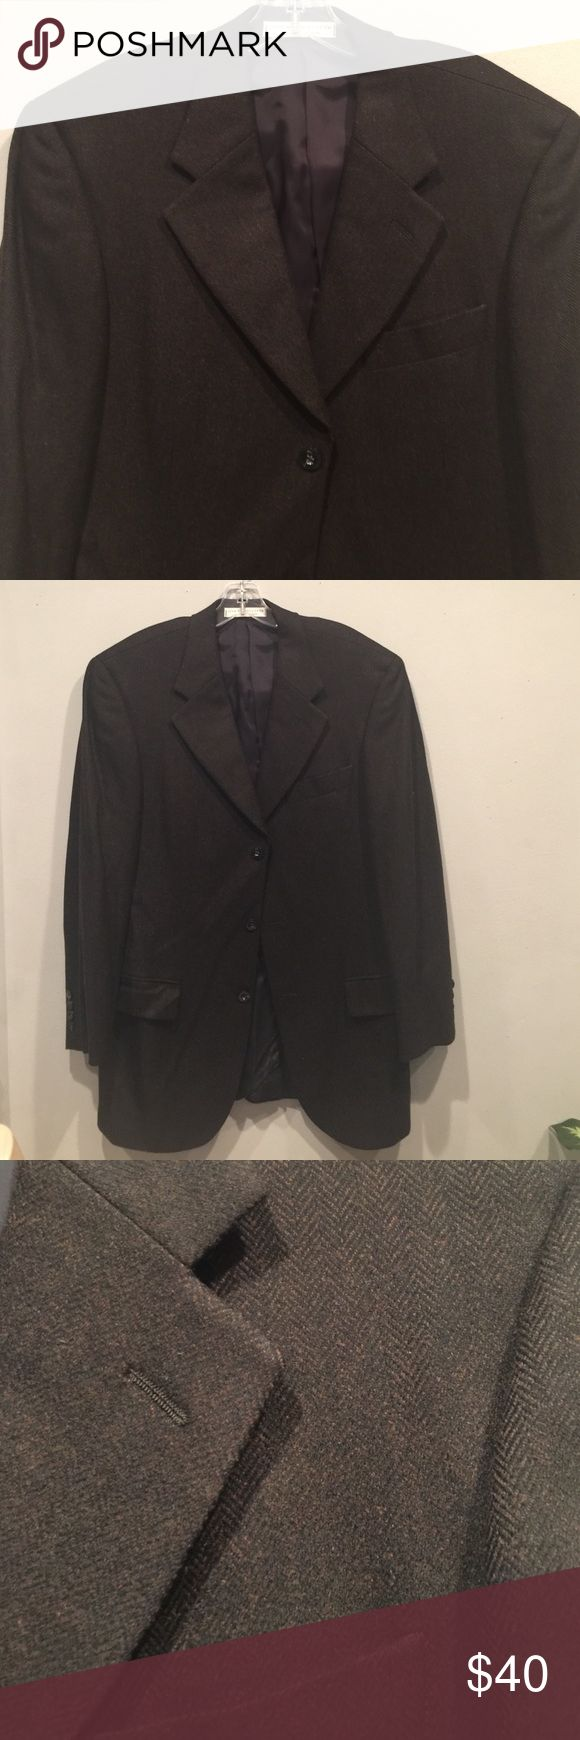 "Nordstroms wool and cashmere blend blazer In good condition, 3 button front, 4 button on cuffs, notch lapel, measures 18"" shoulder to shoulder across back, 31"" from shoulder to bottom hem, sleeve length 24"" John W. Nordstrom Jackets & Coats Blazers"